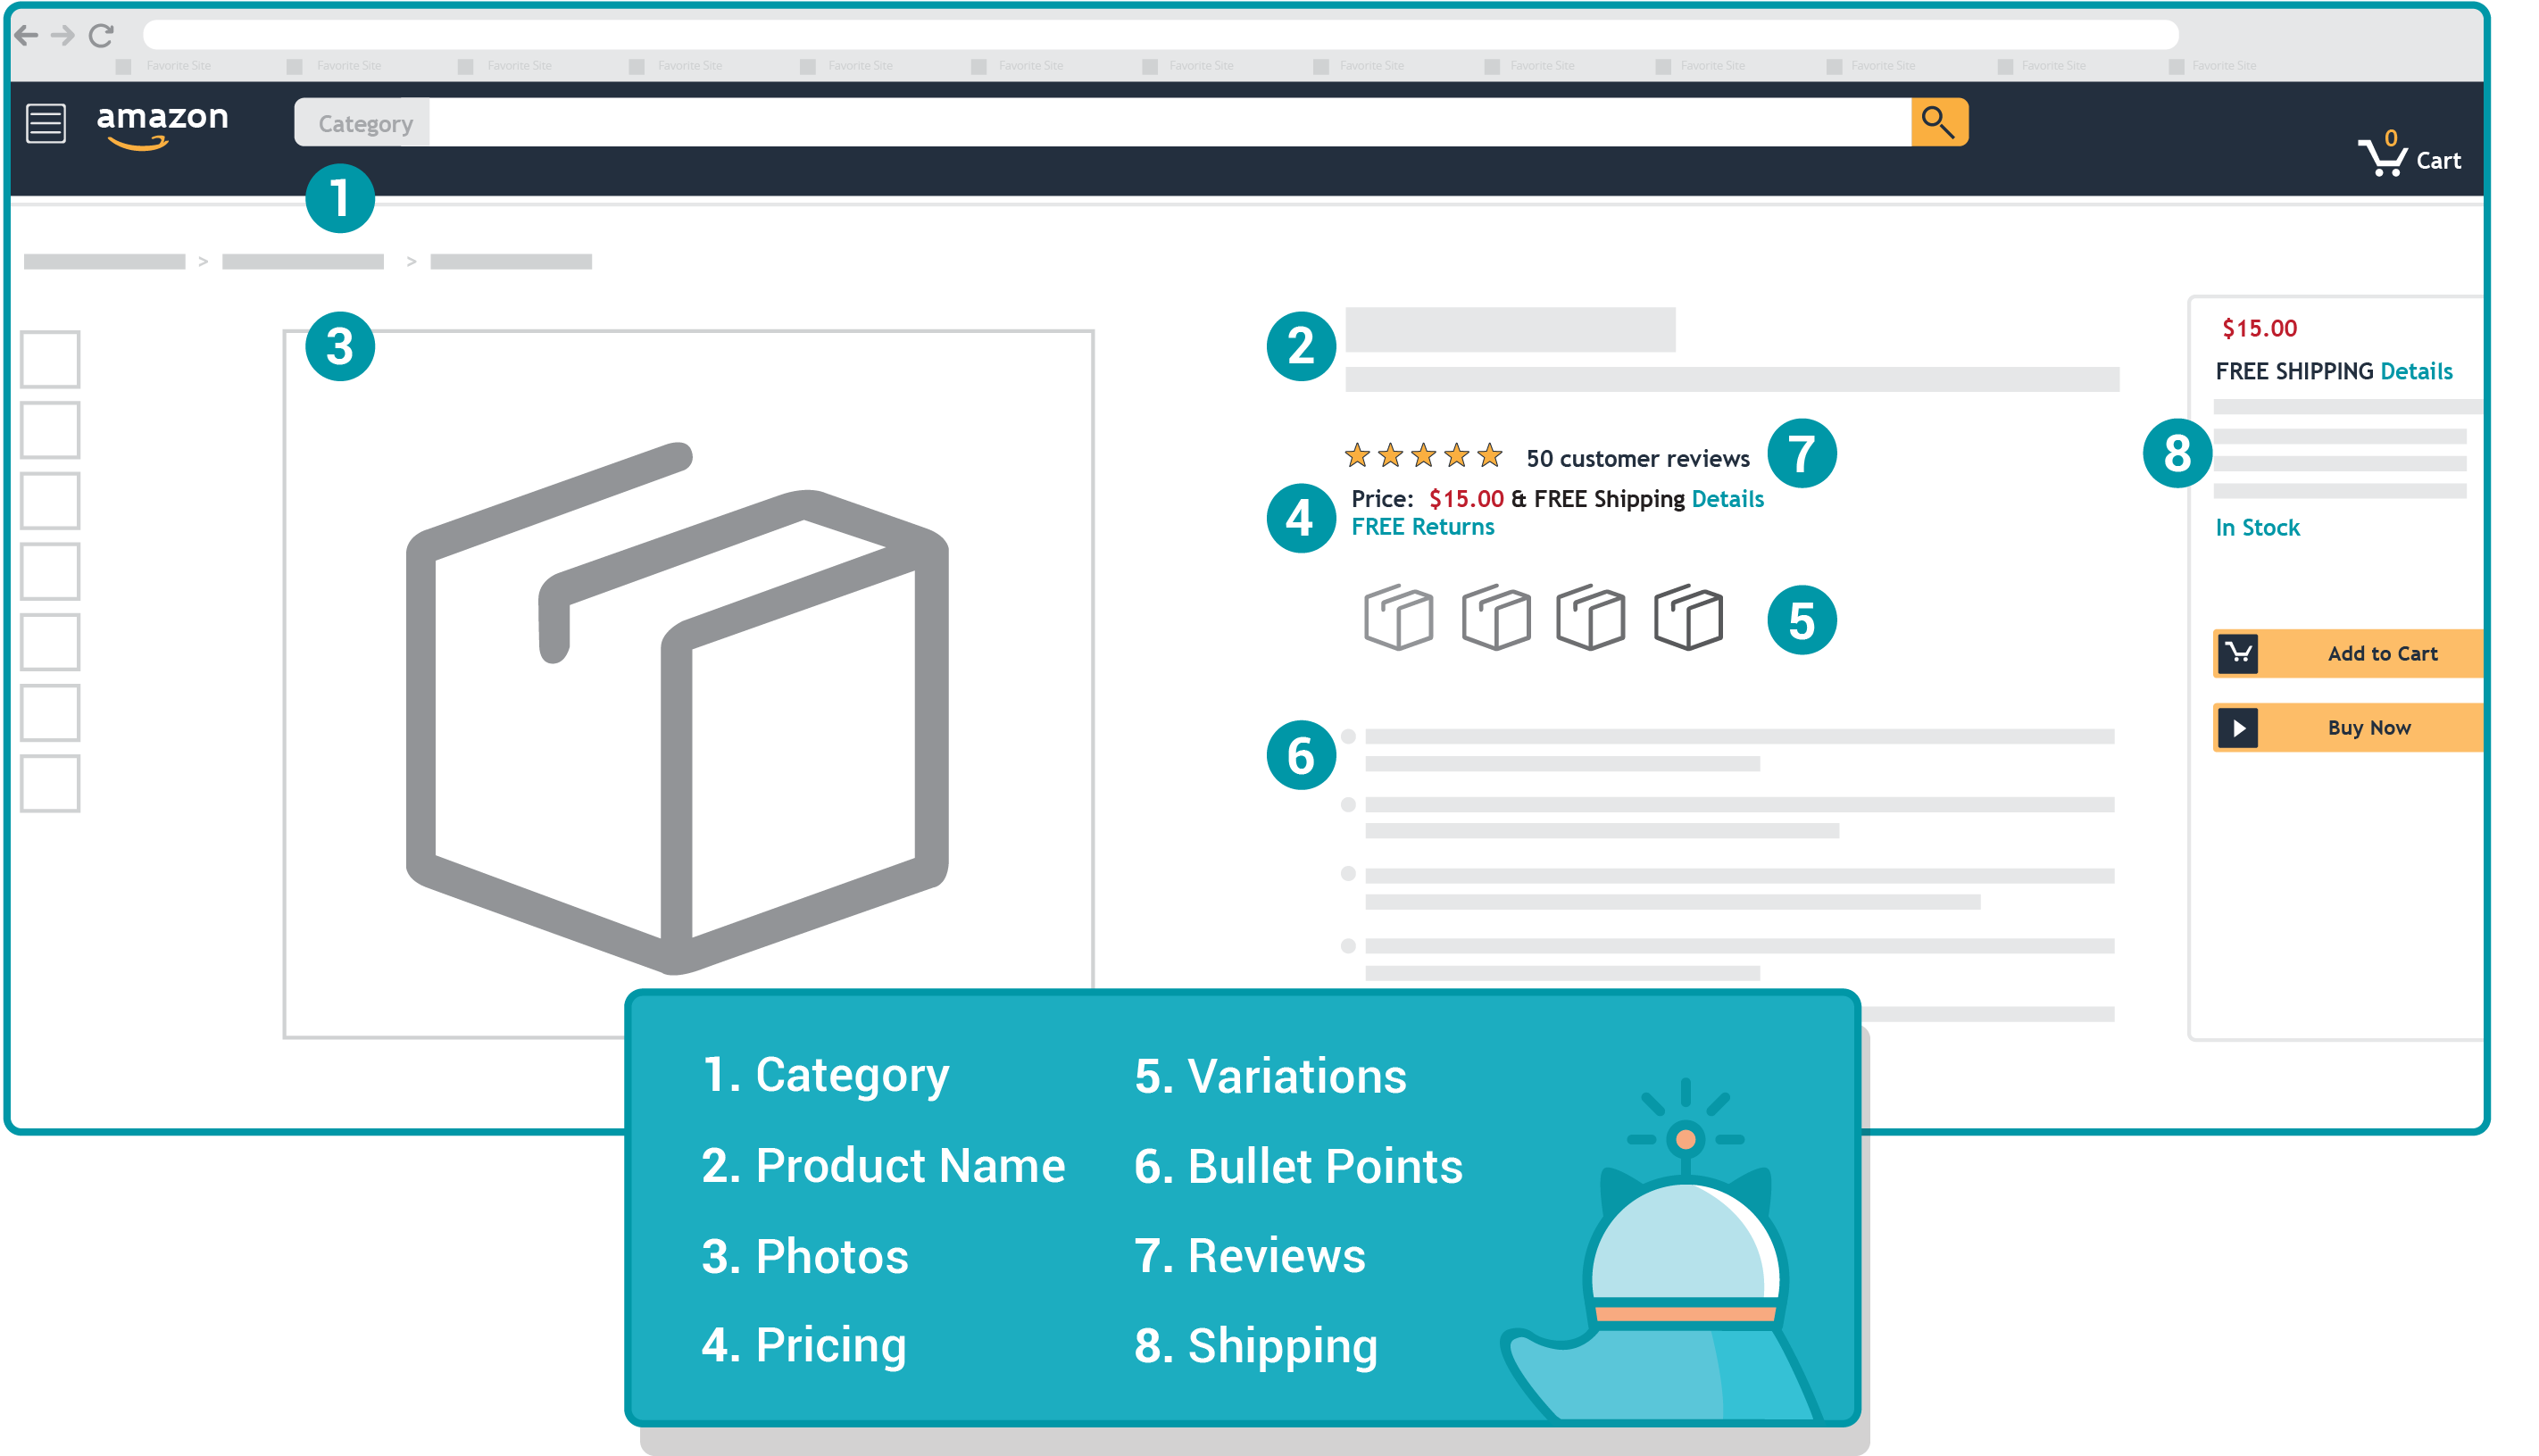 example of a product listing optimized for amazon